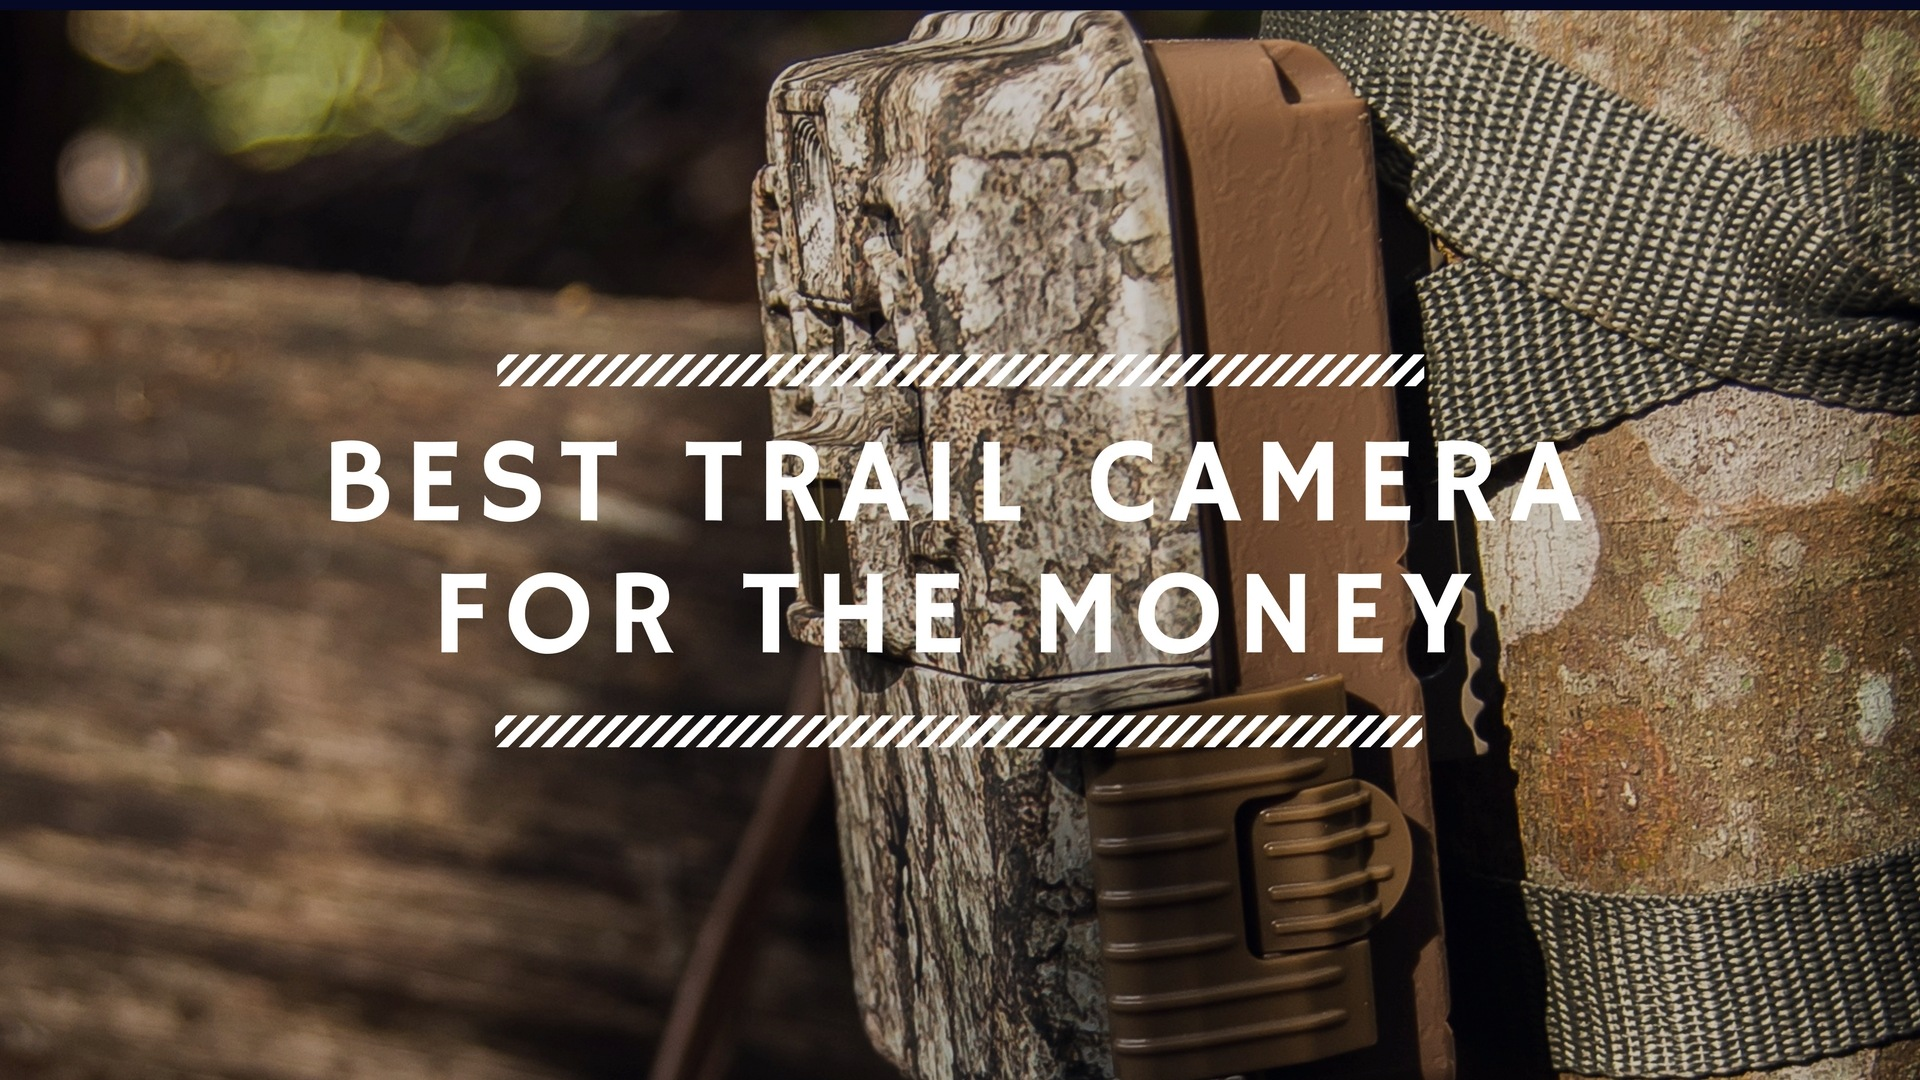 https://outdoorstack.com/wp-content/uploads/2017/12/Best-Trail-Camera-For-The-Money.jpg